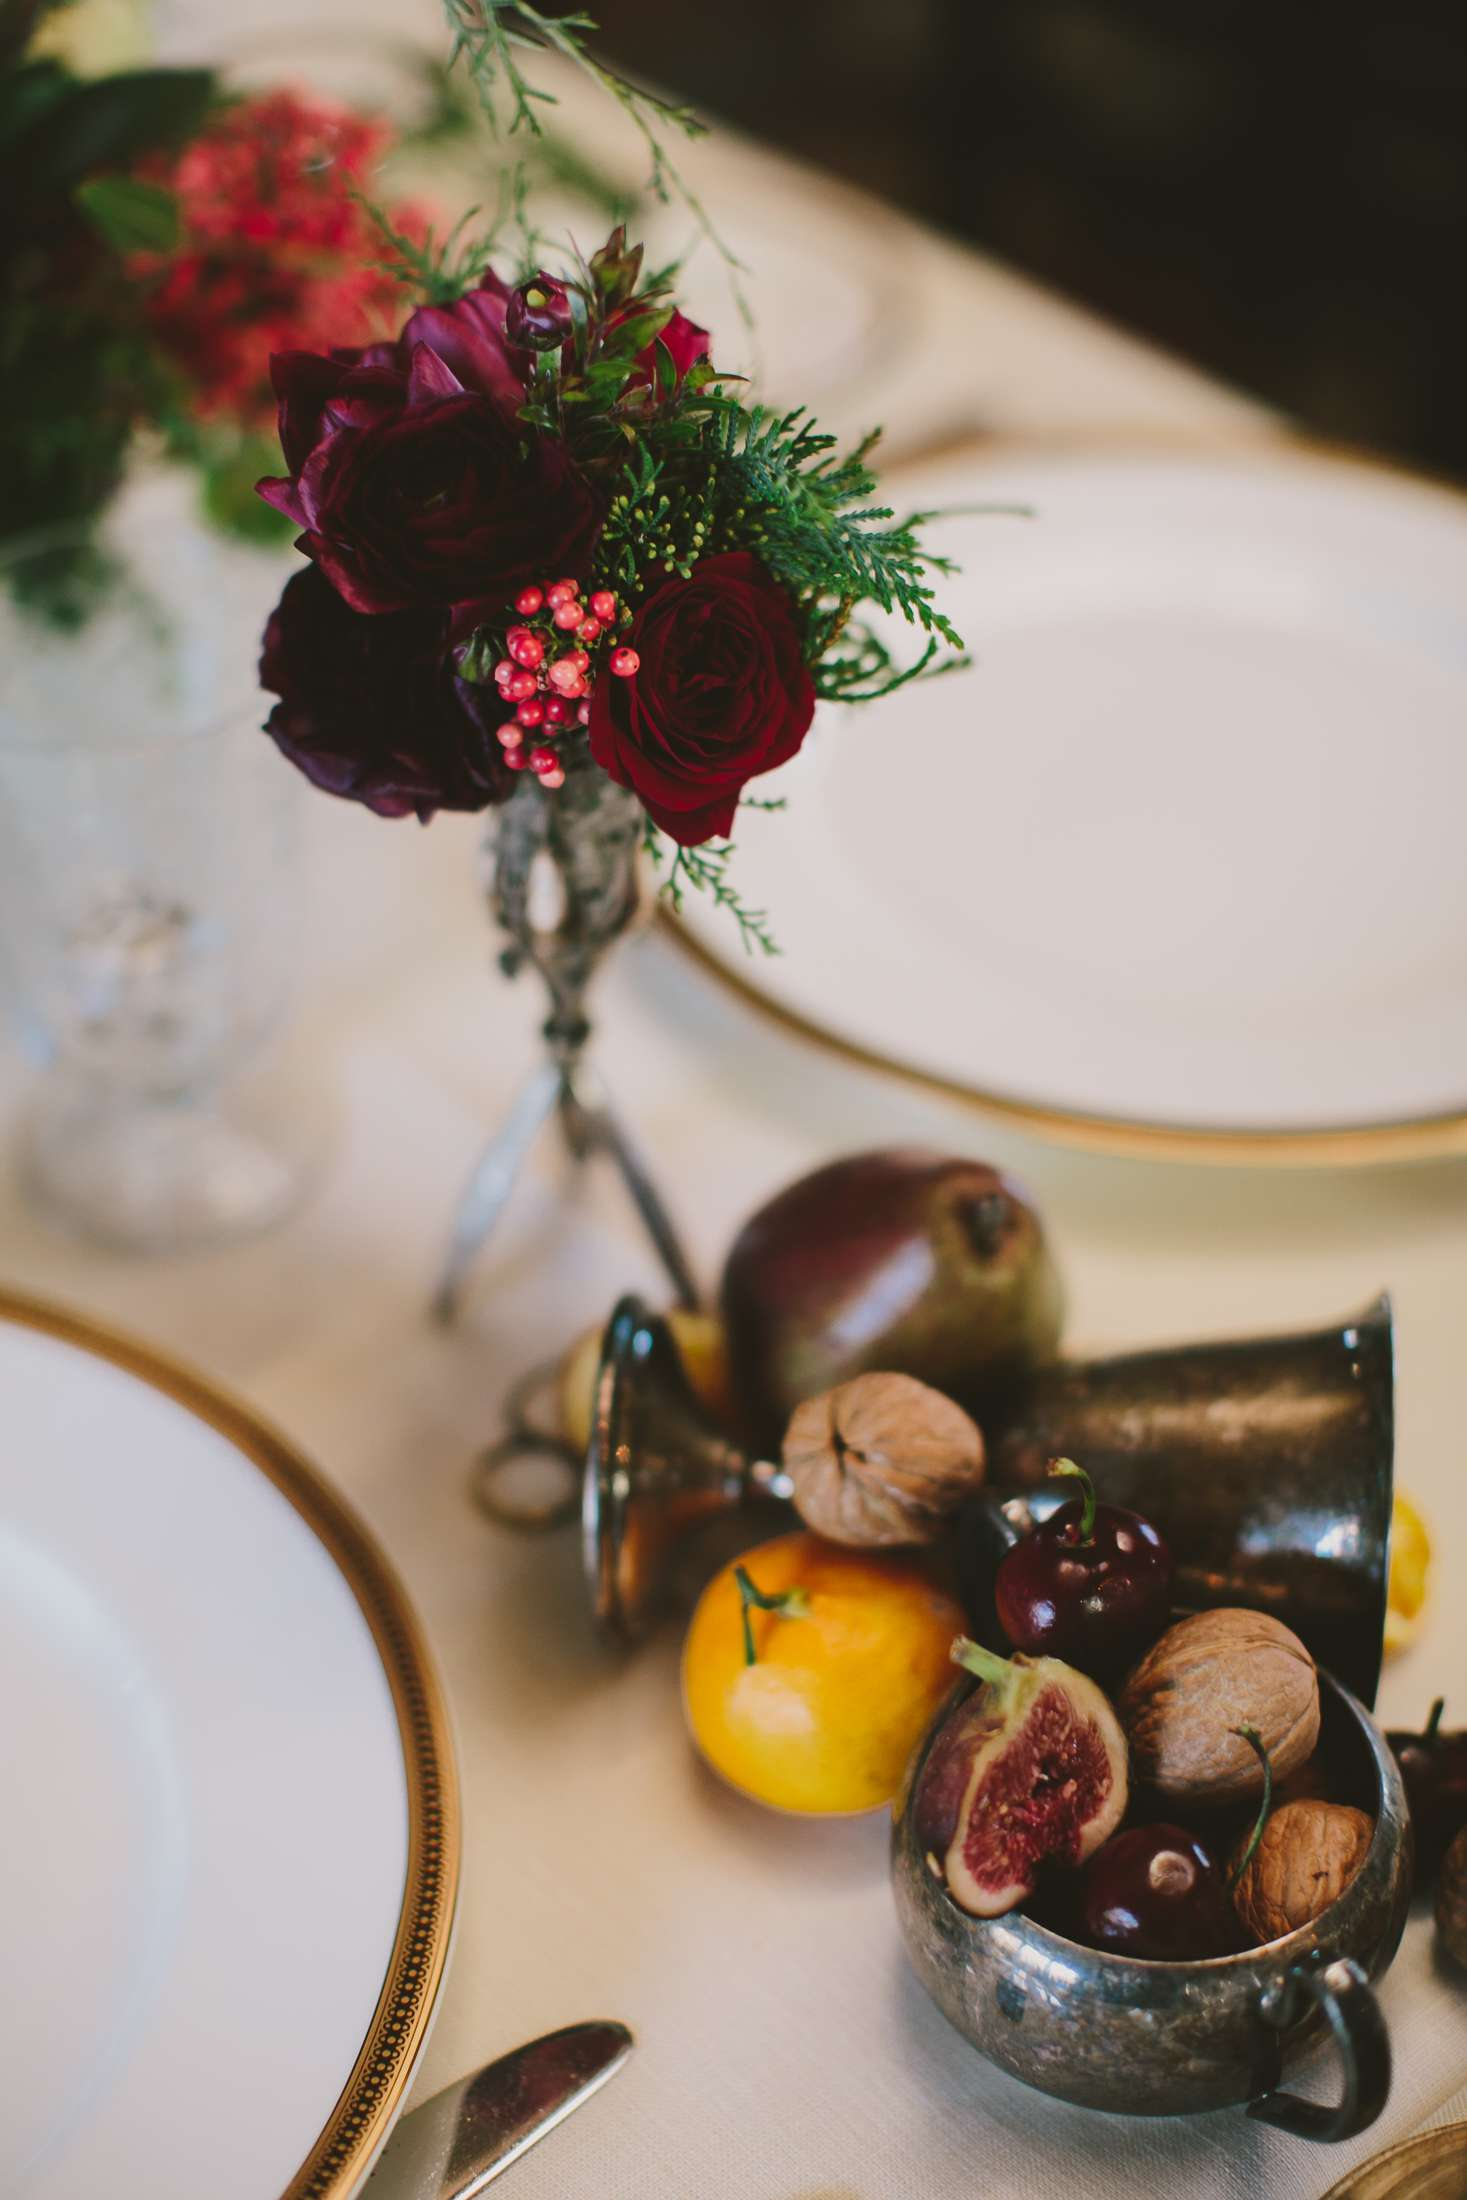 figs and fruits on a table